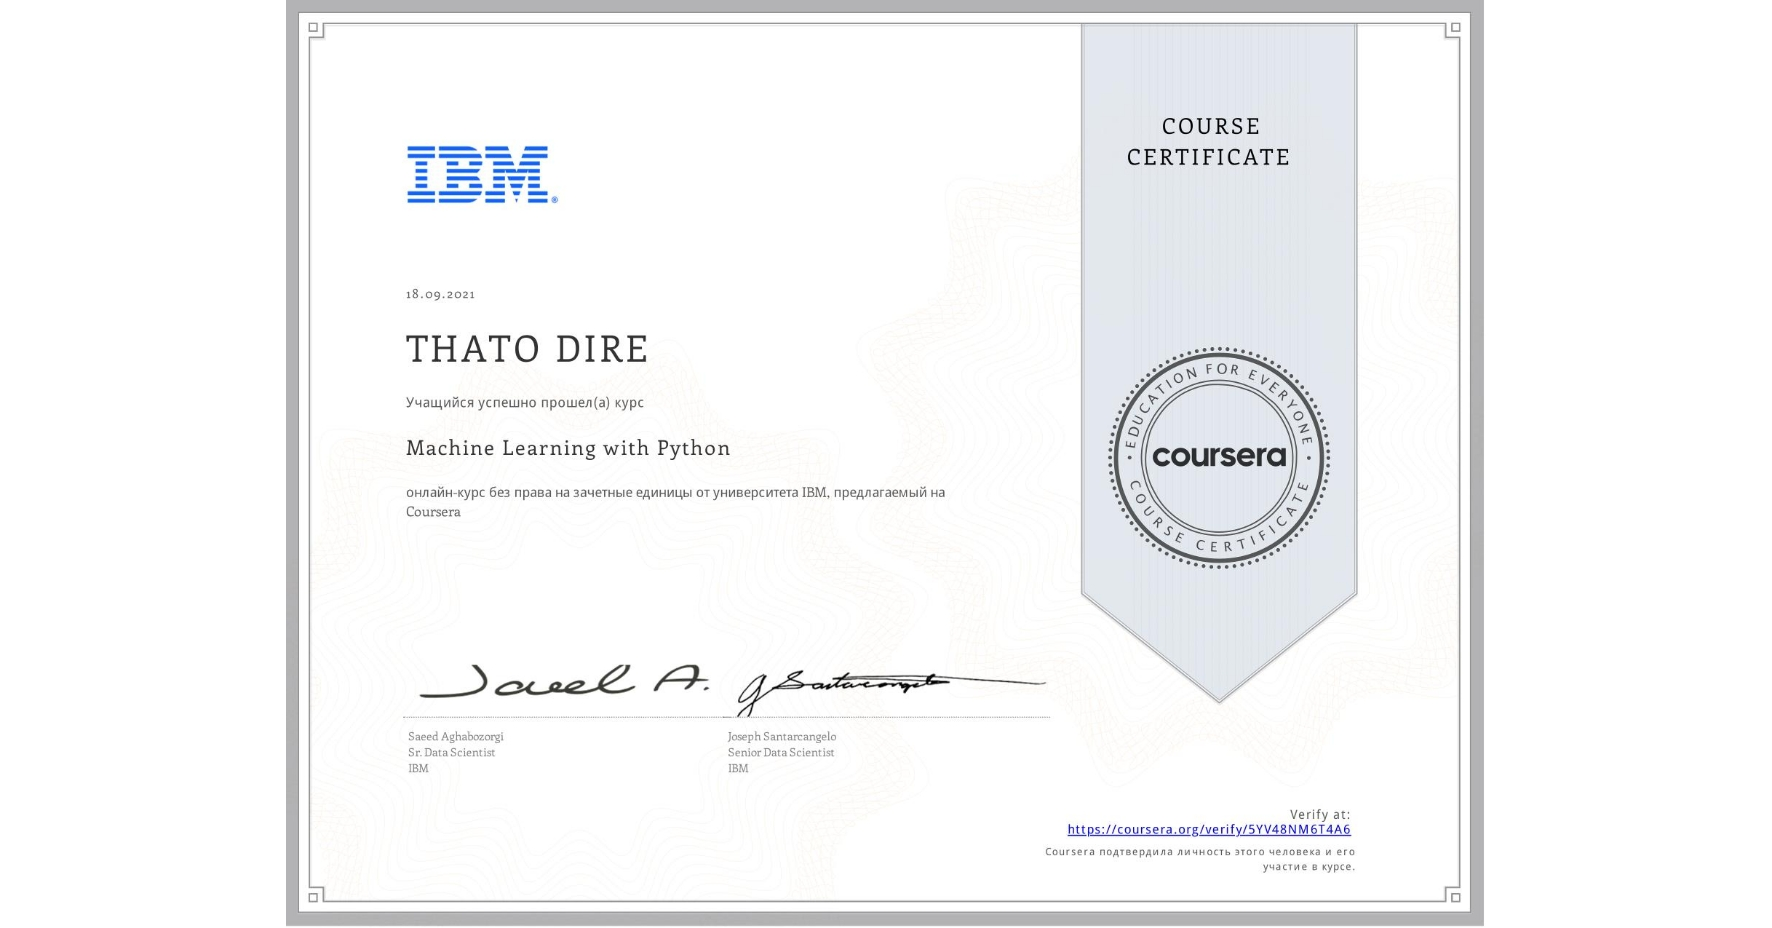 View certificate for THATO DIRE, Machine Learning with Python, an online non-credit course authorized by IBM and offered through Coursera